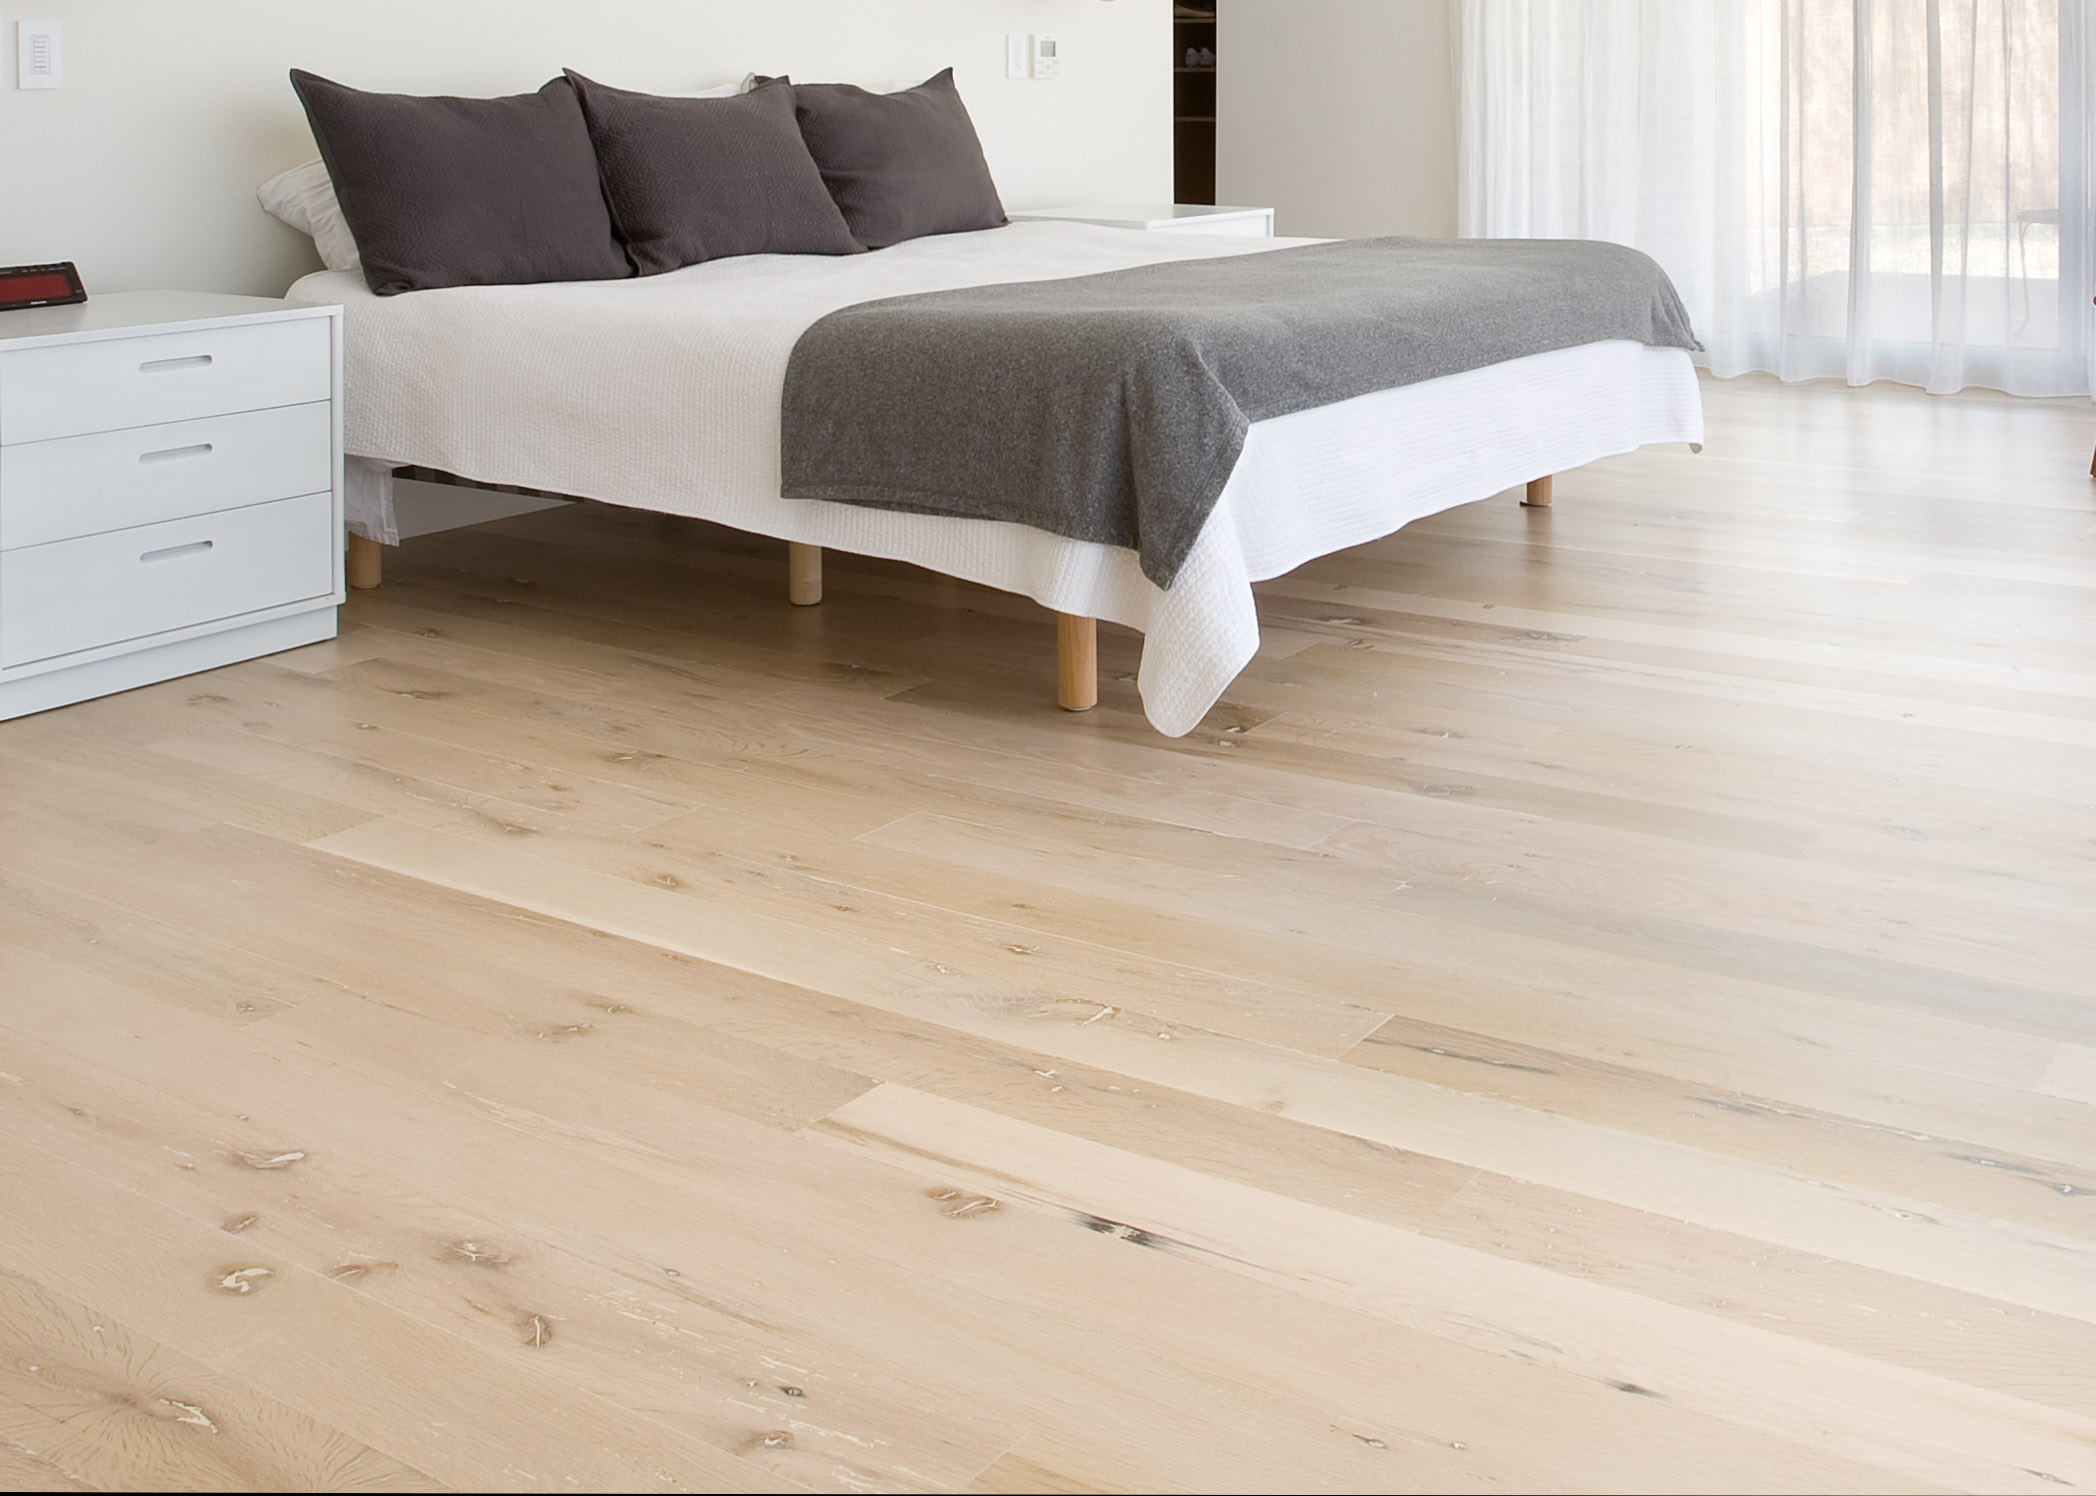 """The newest craze is white oak - this more uniformed but still custom look is coming in fast. It is lighter, it comes in both machine sewn or rough sewn so you can control the """"rustic-ness"""" of it, can be stained or just clear coated, and tighter gaps and even heights make it easier to clean."""